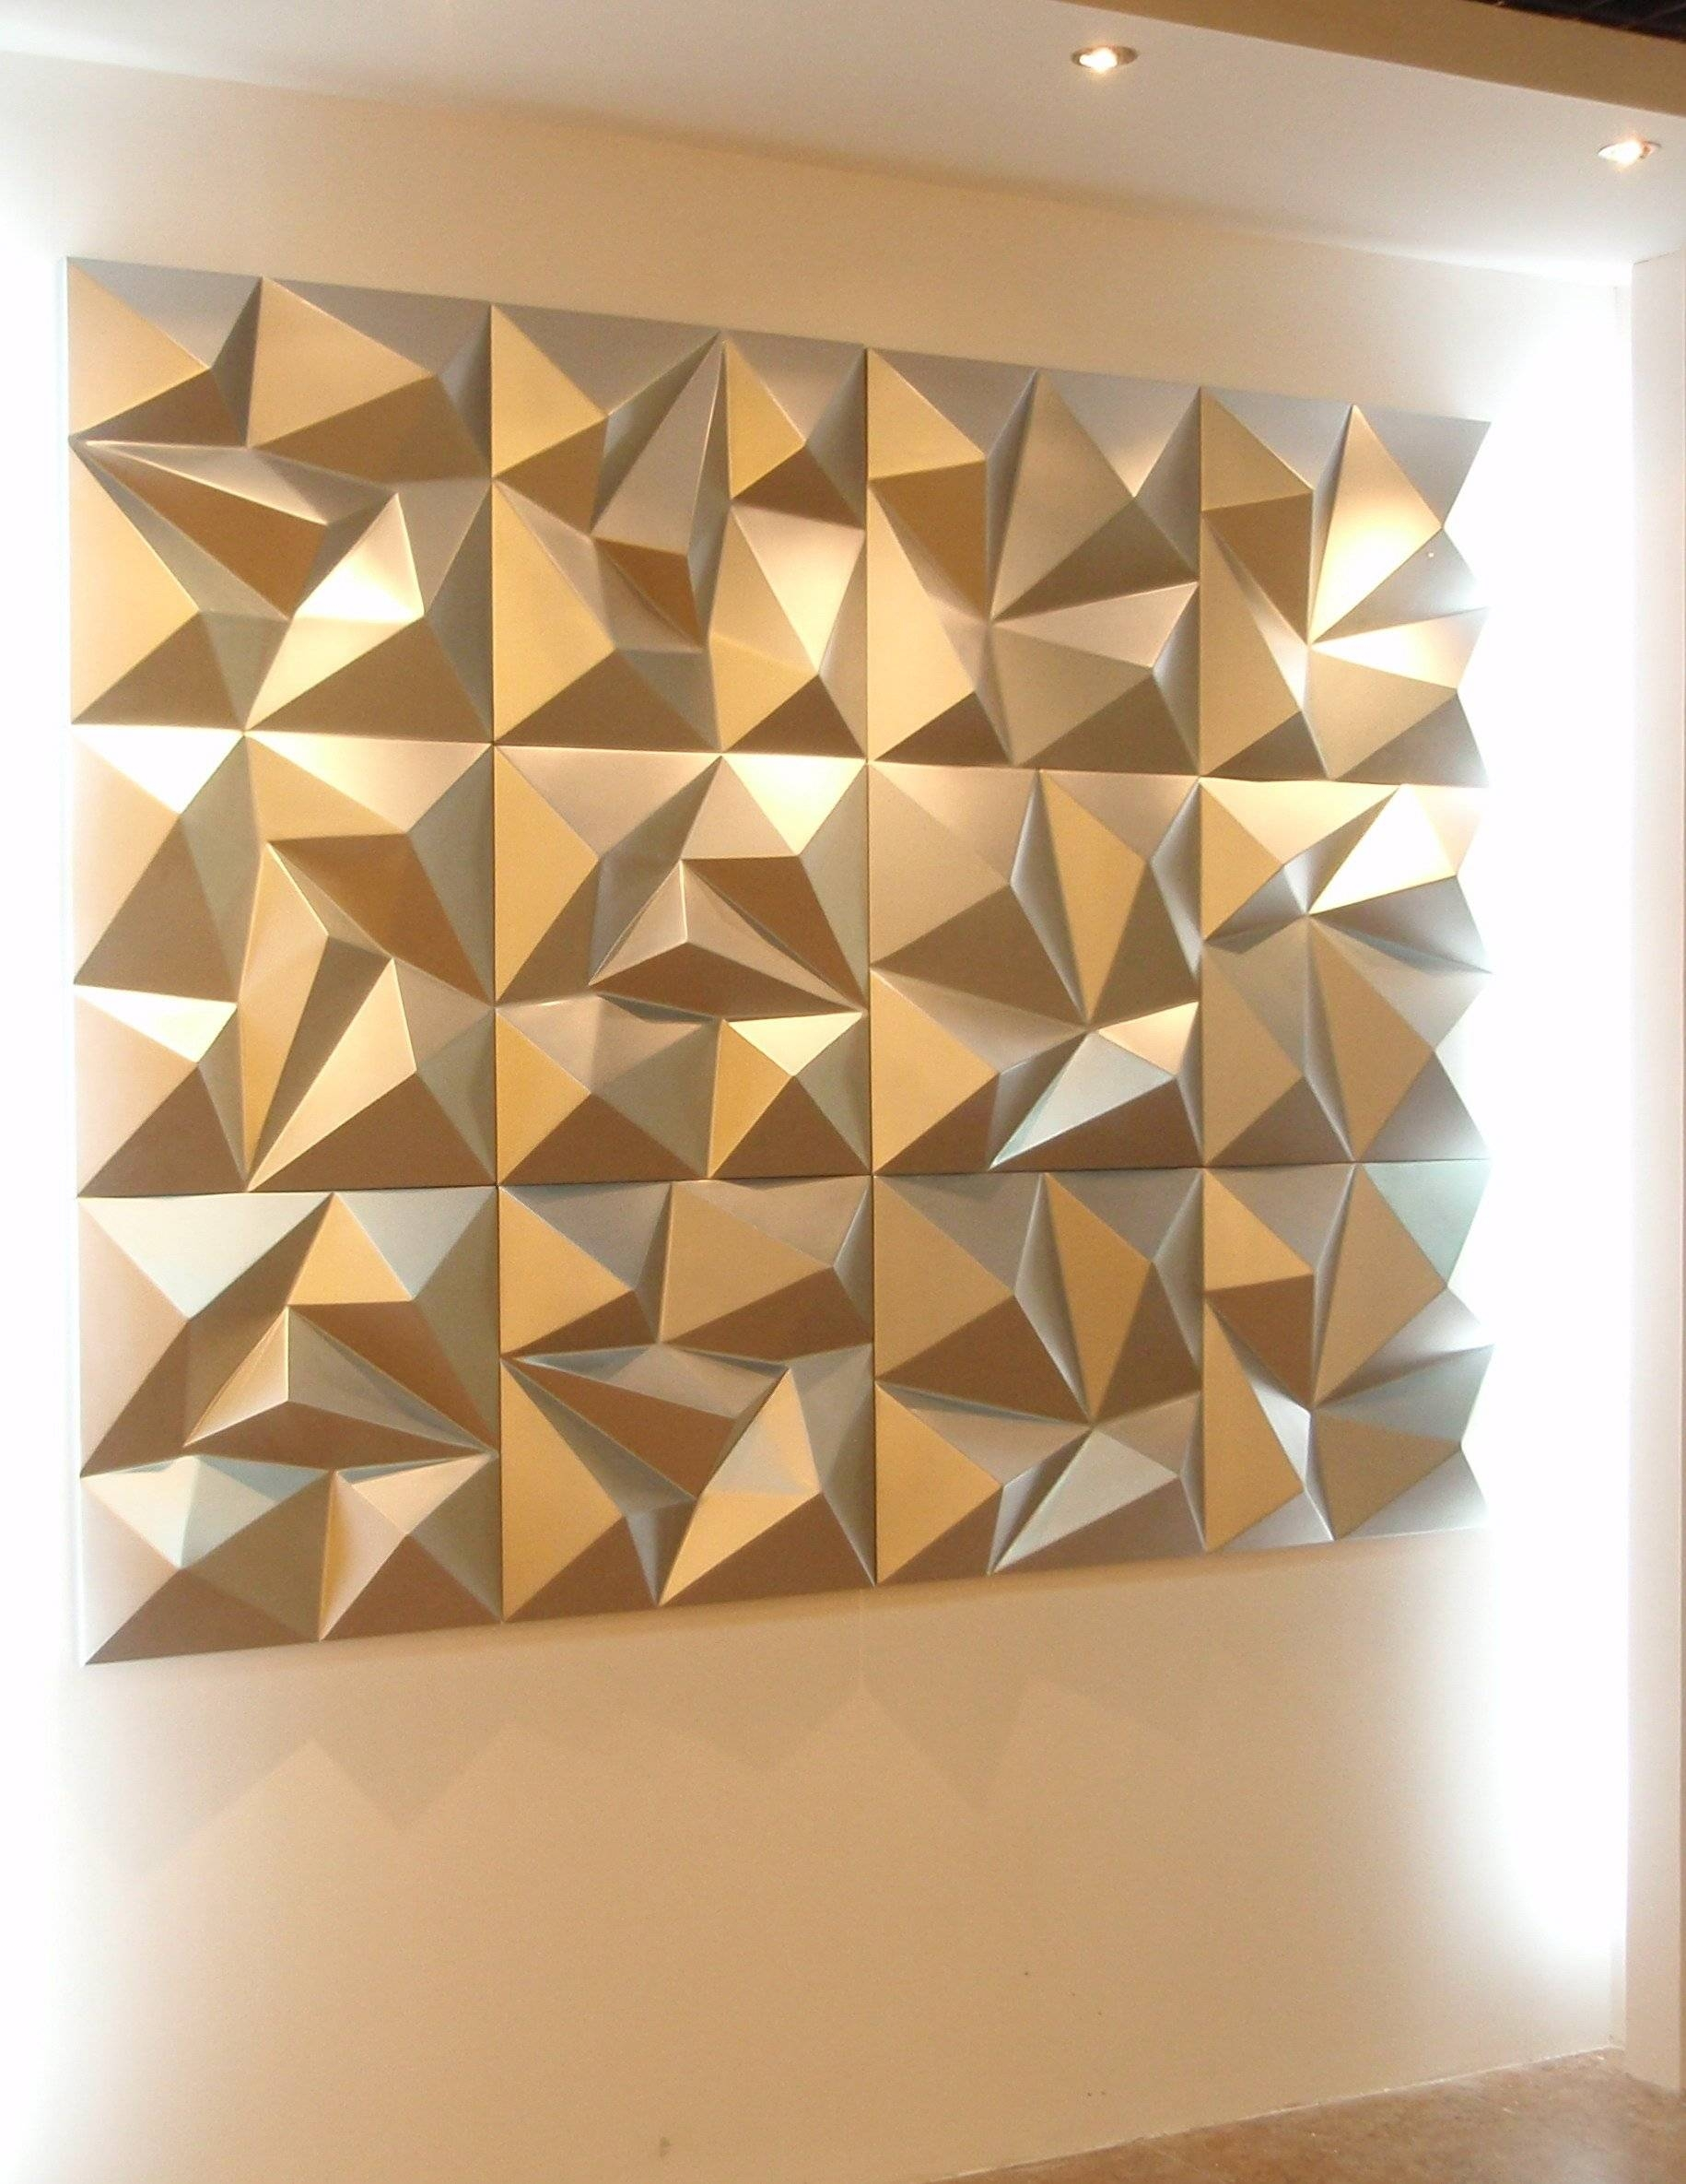 3D Wall Decor Panels – Home Design Throughout Most Current 3D Modern Wall Art (View 3 of 20)